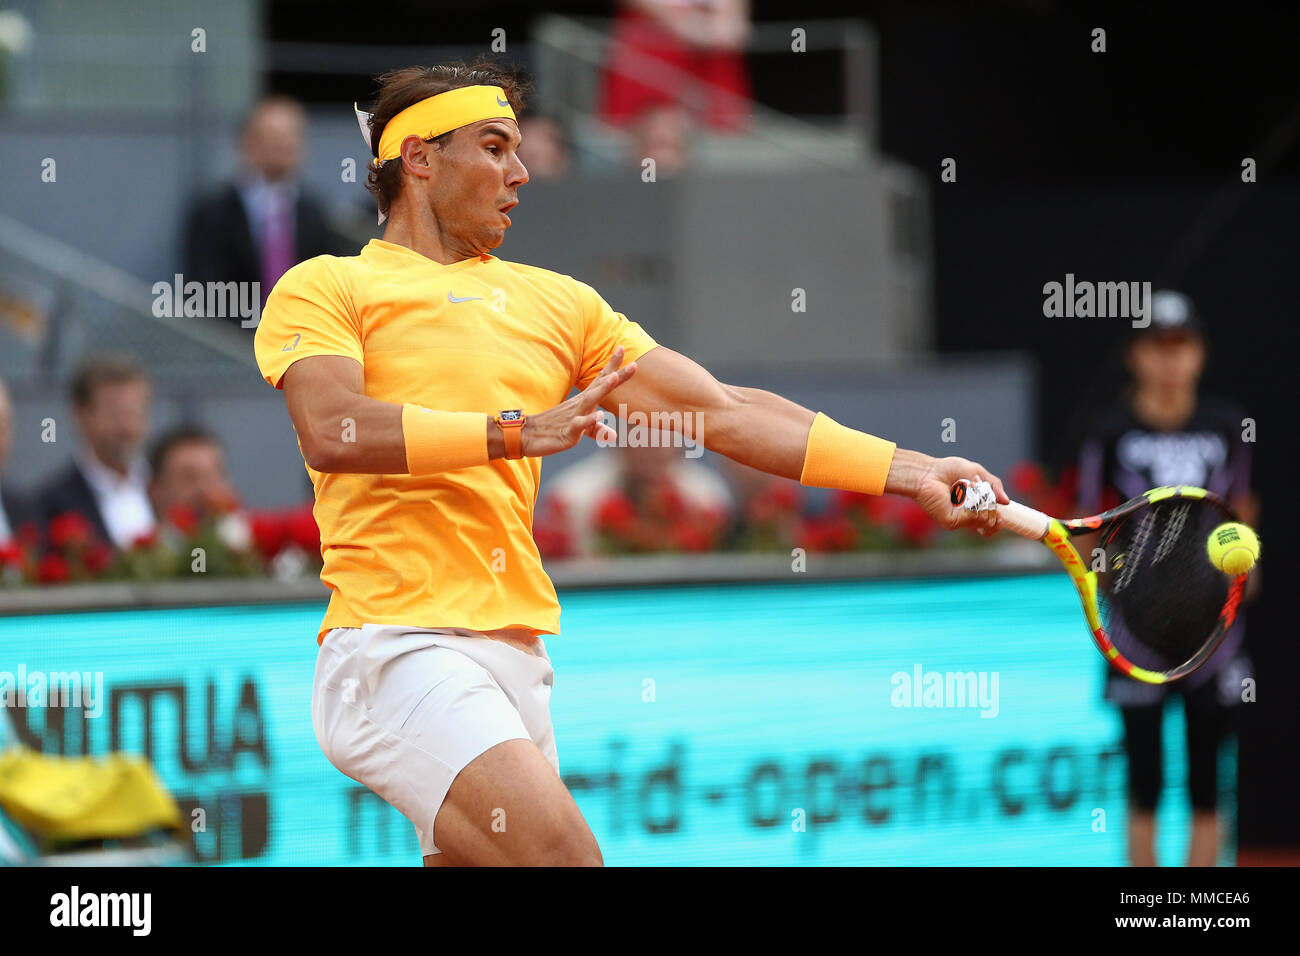 Rafael Nadal Of Spain Plays A Forehand Against Diego Schwartzman Of Argentina In Their Third Round